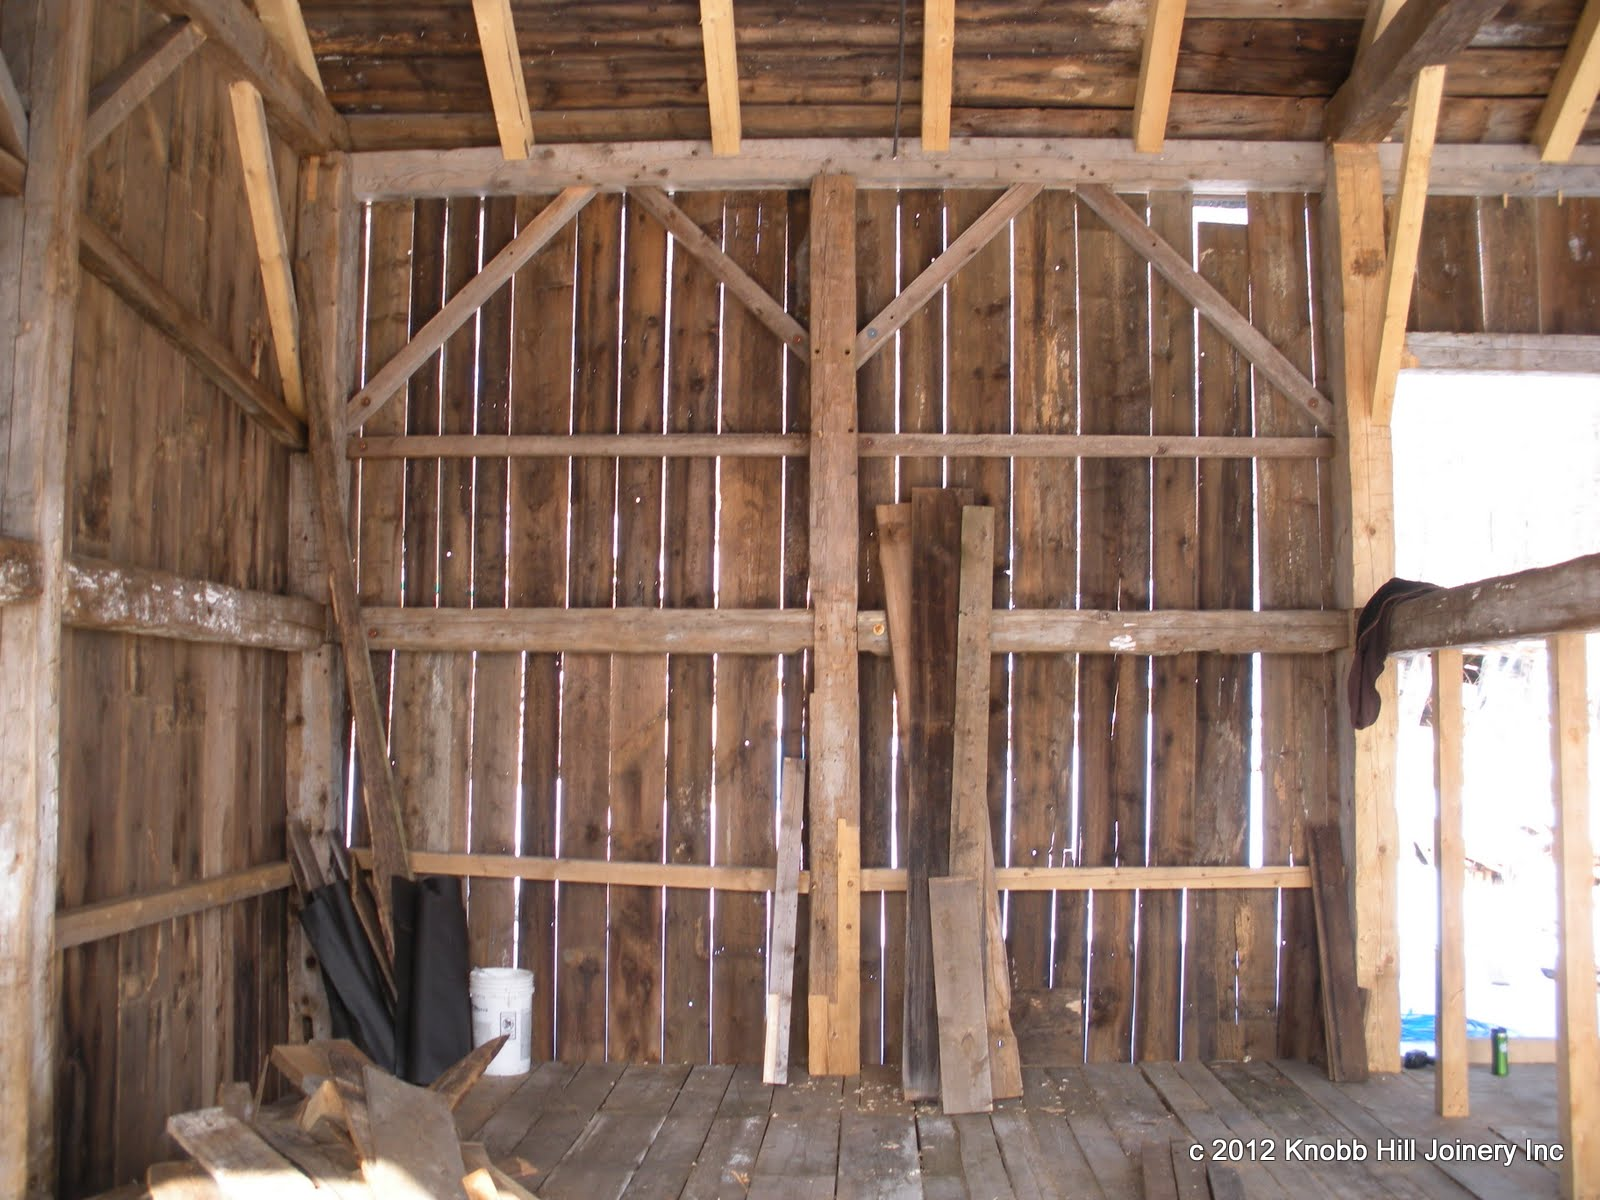 The lower girt on the left side had mortises at two different heights.